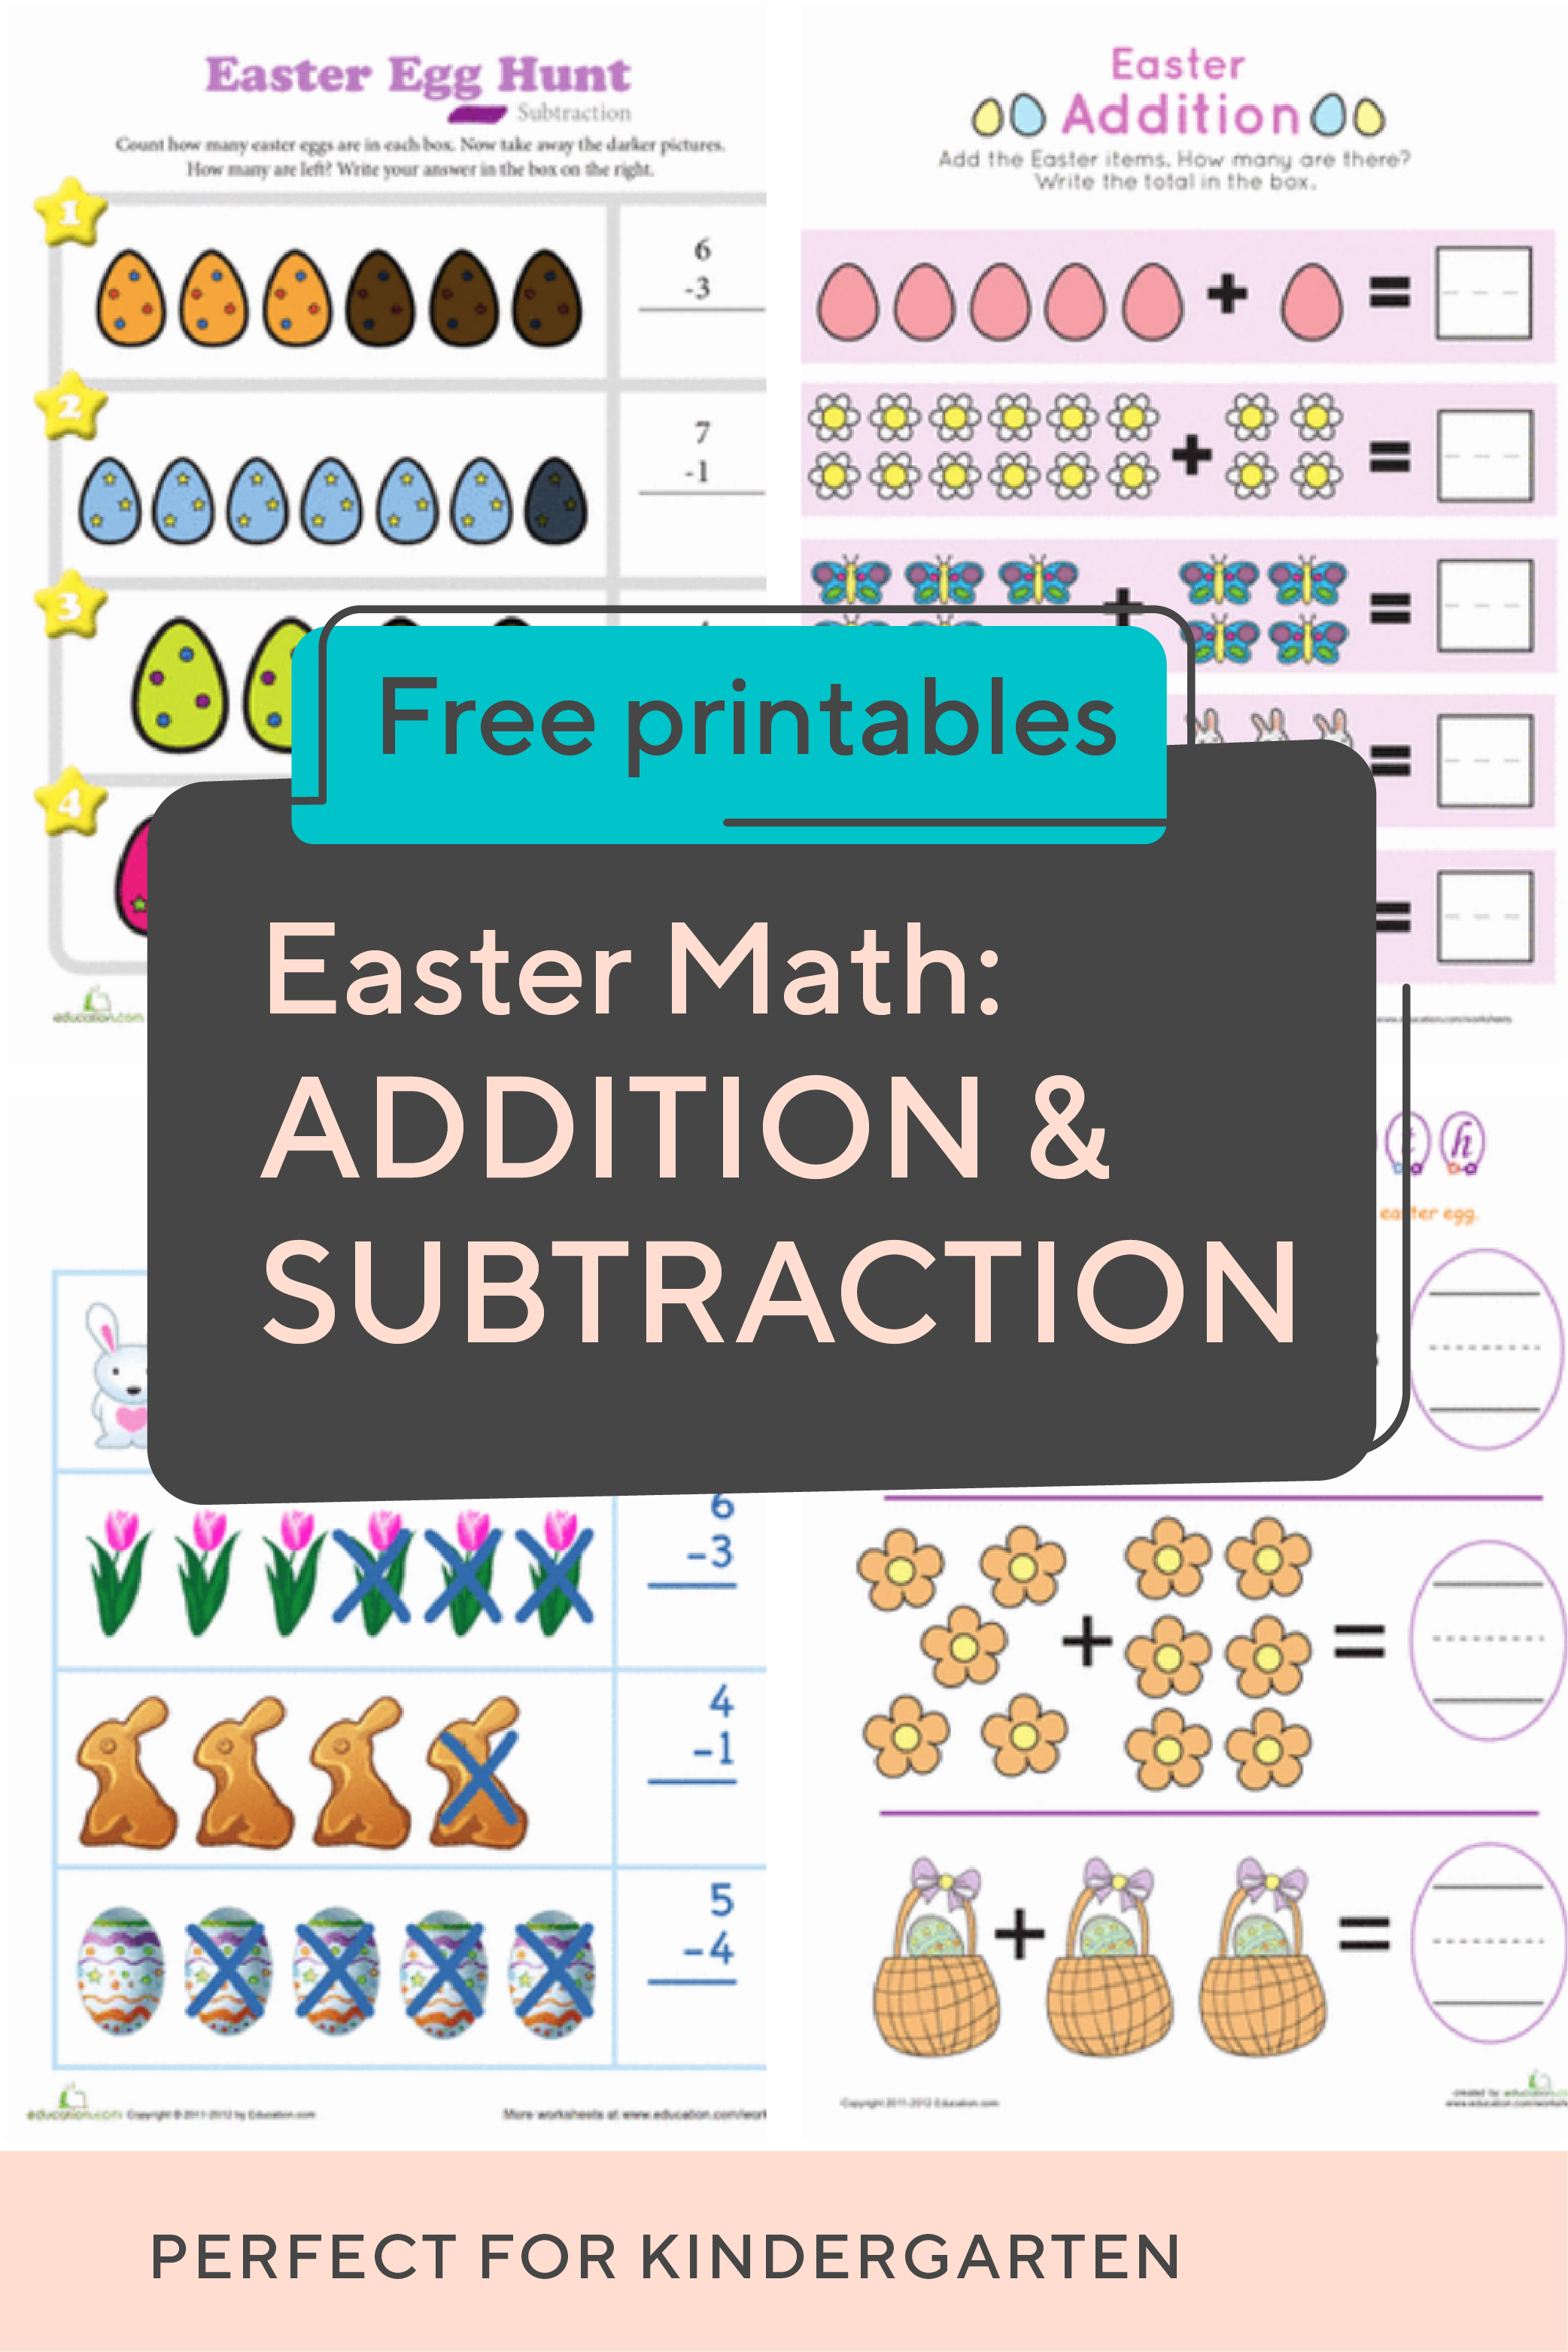 Spring Into The Season With This Collection Of #kindergarten #easter